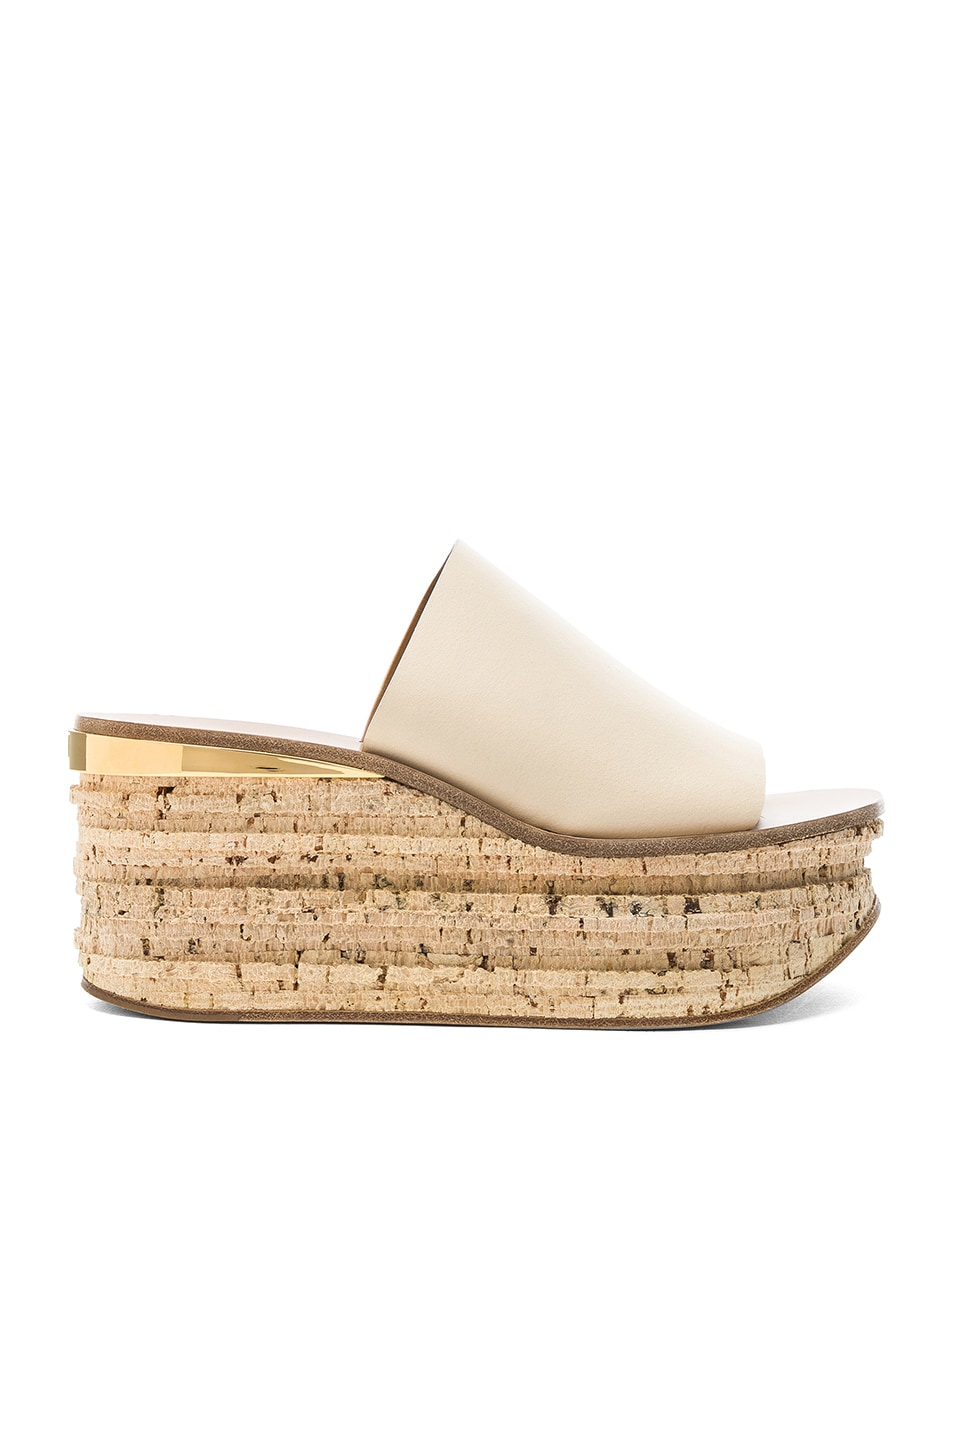 Image 1 of Chloe Platform Sandals in Mild Beige